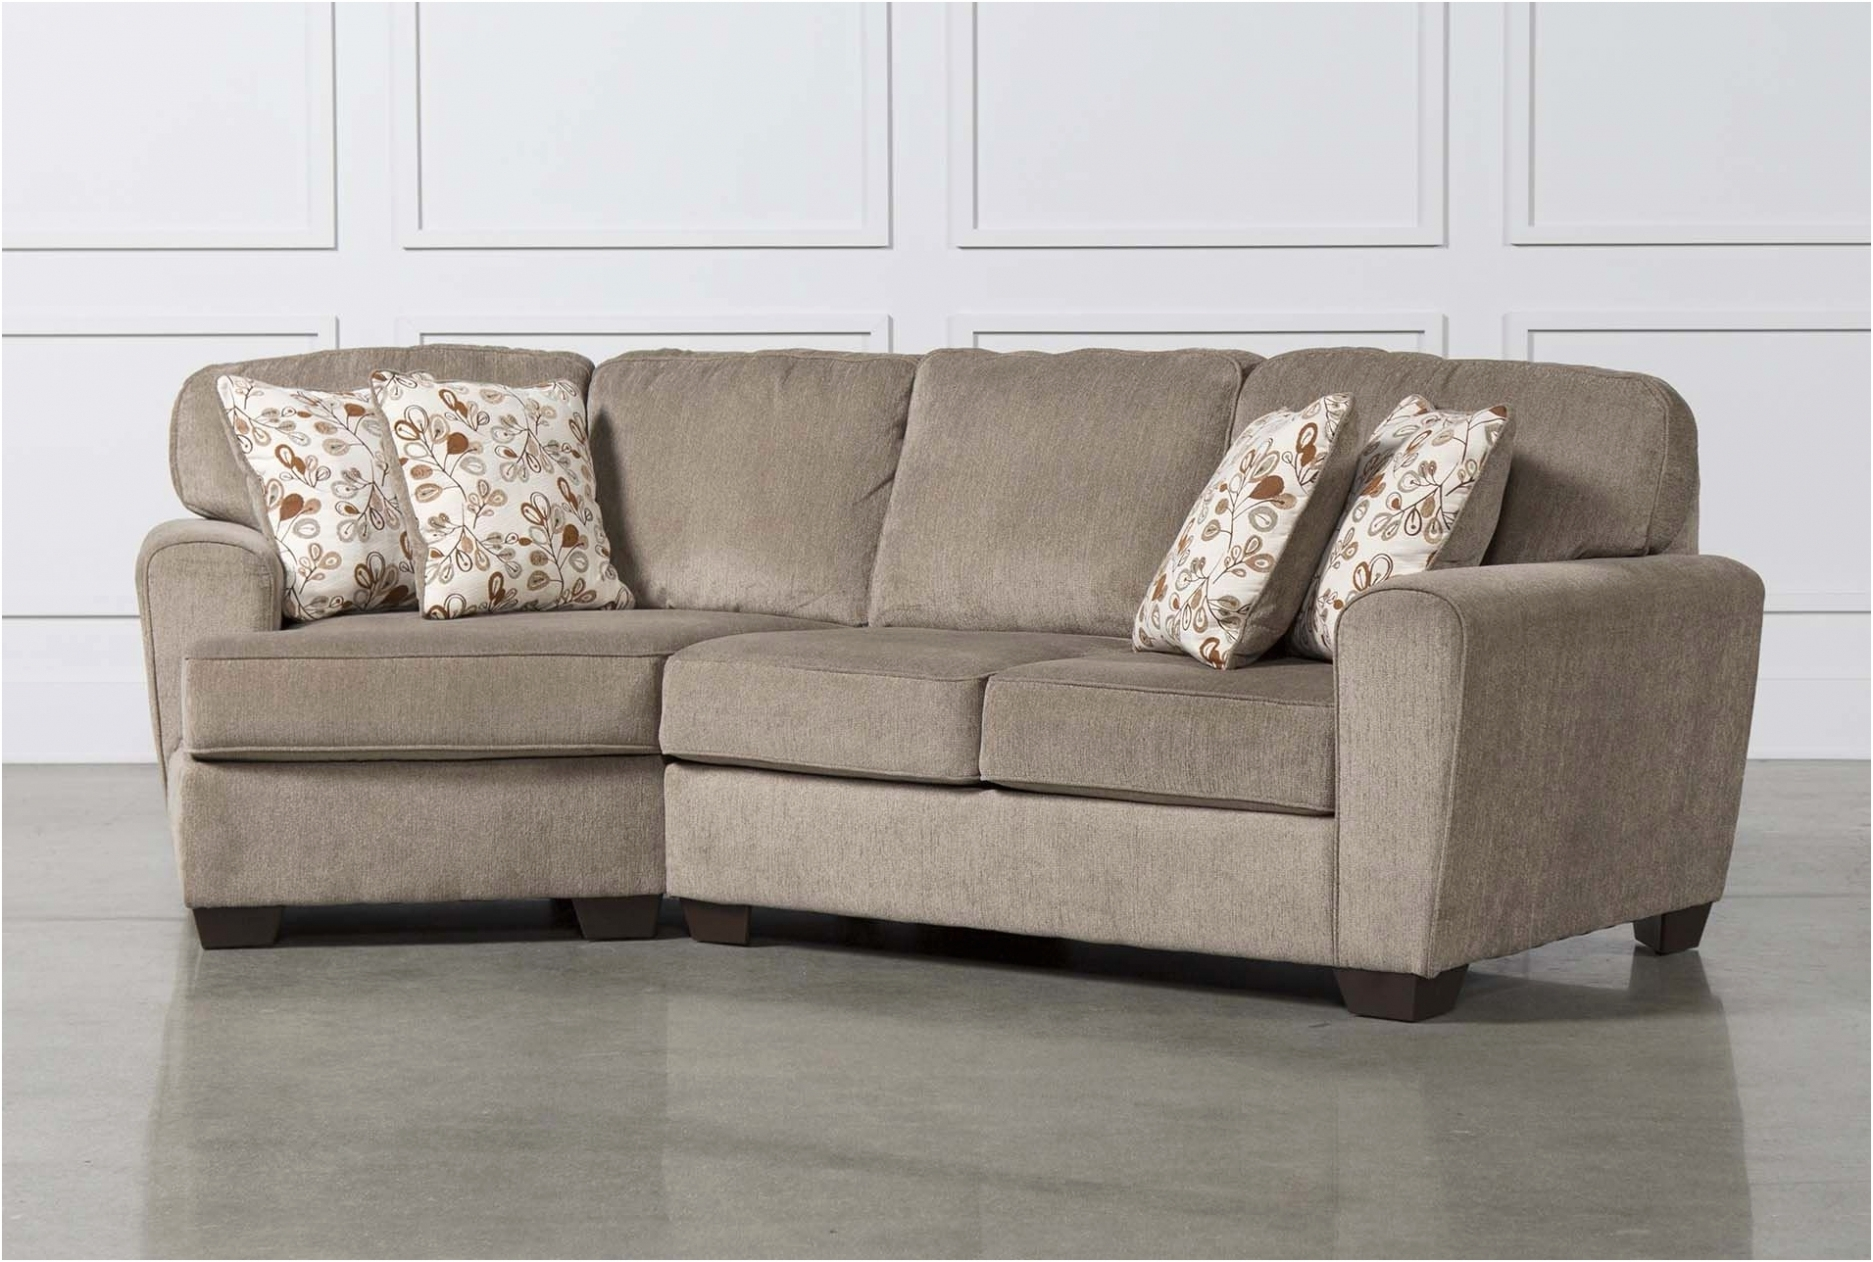 Living Spaces Sectional Sofa Bed - Sofa Design Ideas regarding Delano 2 Piece Sectionals With Laf Oversized Chaise (Image 23 of 30)